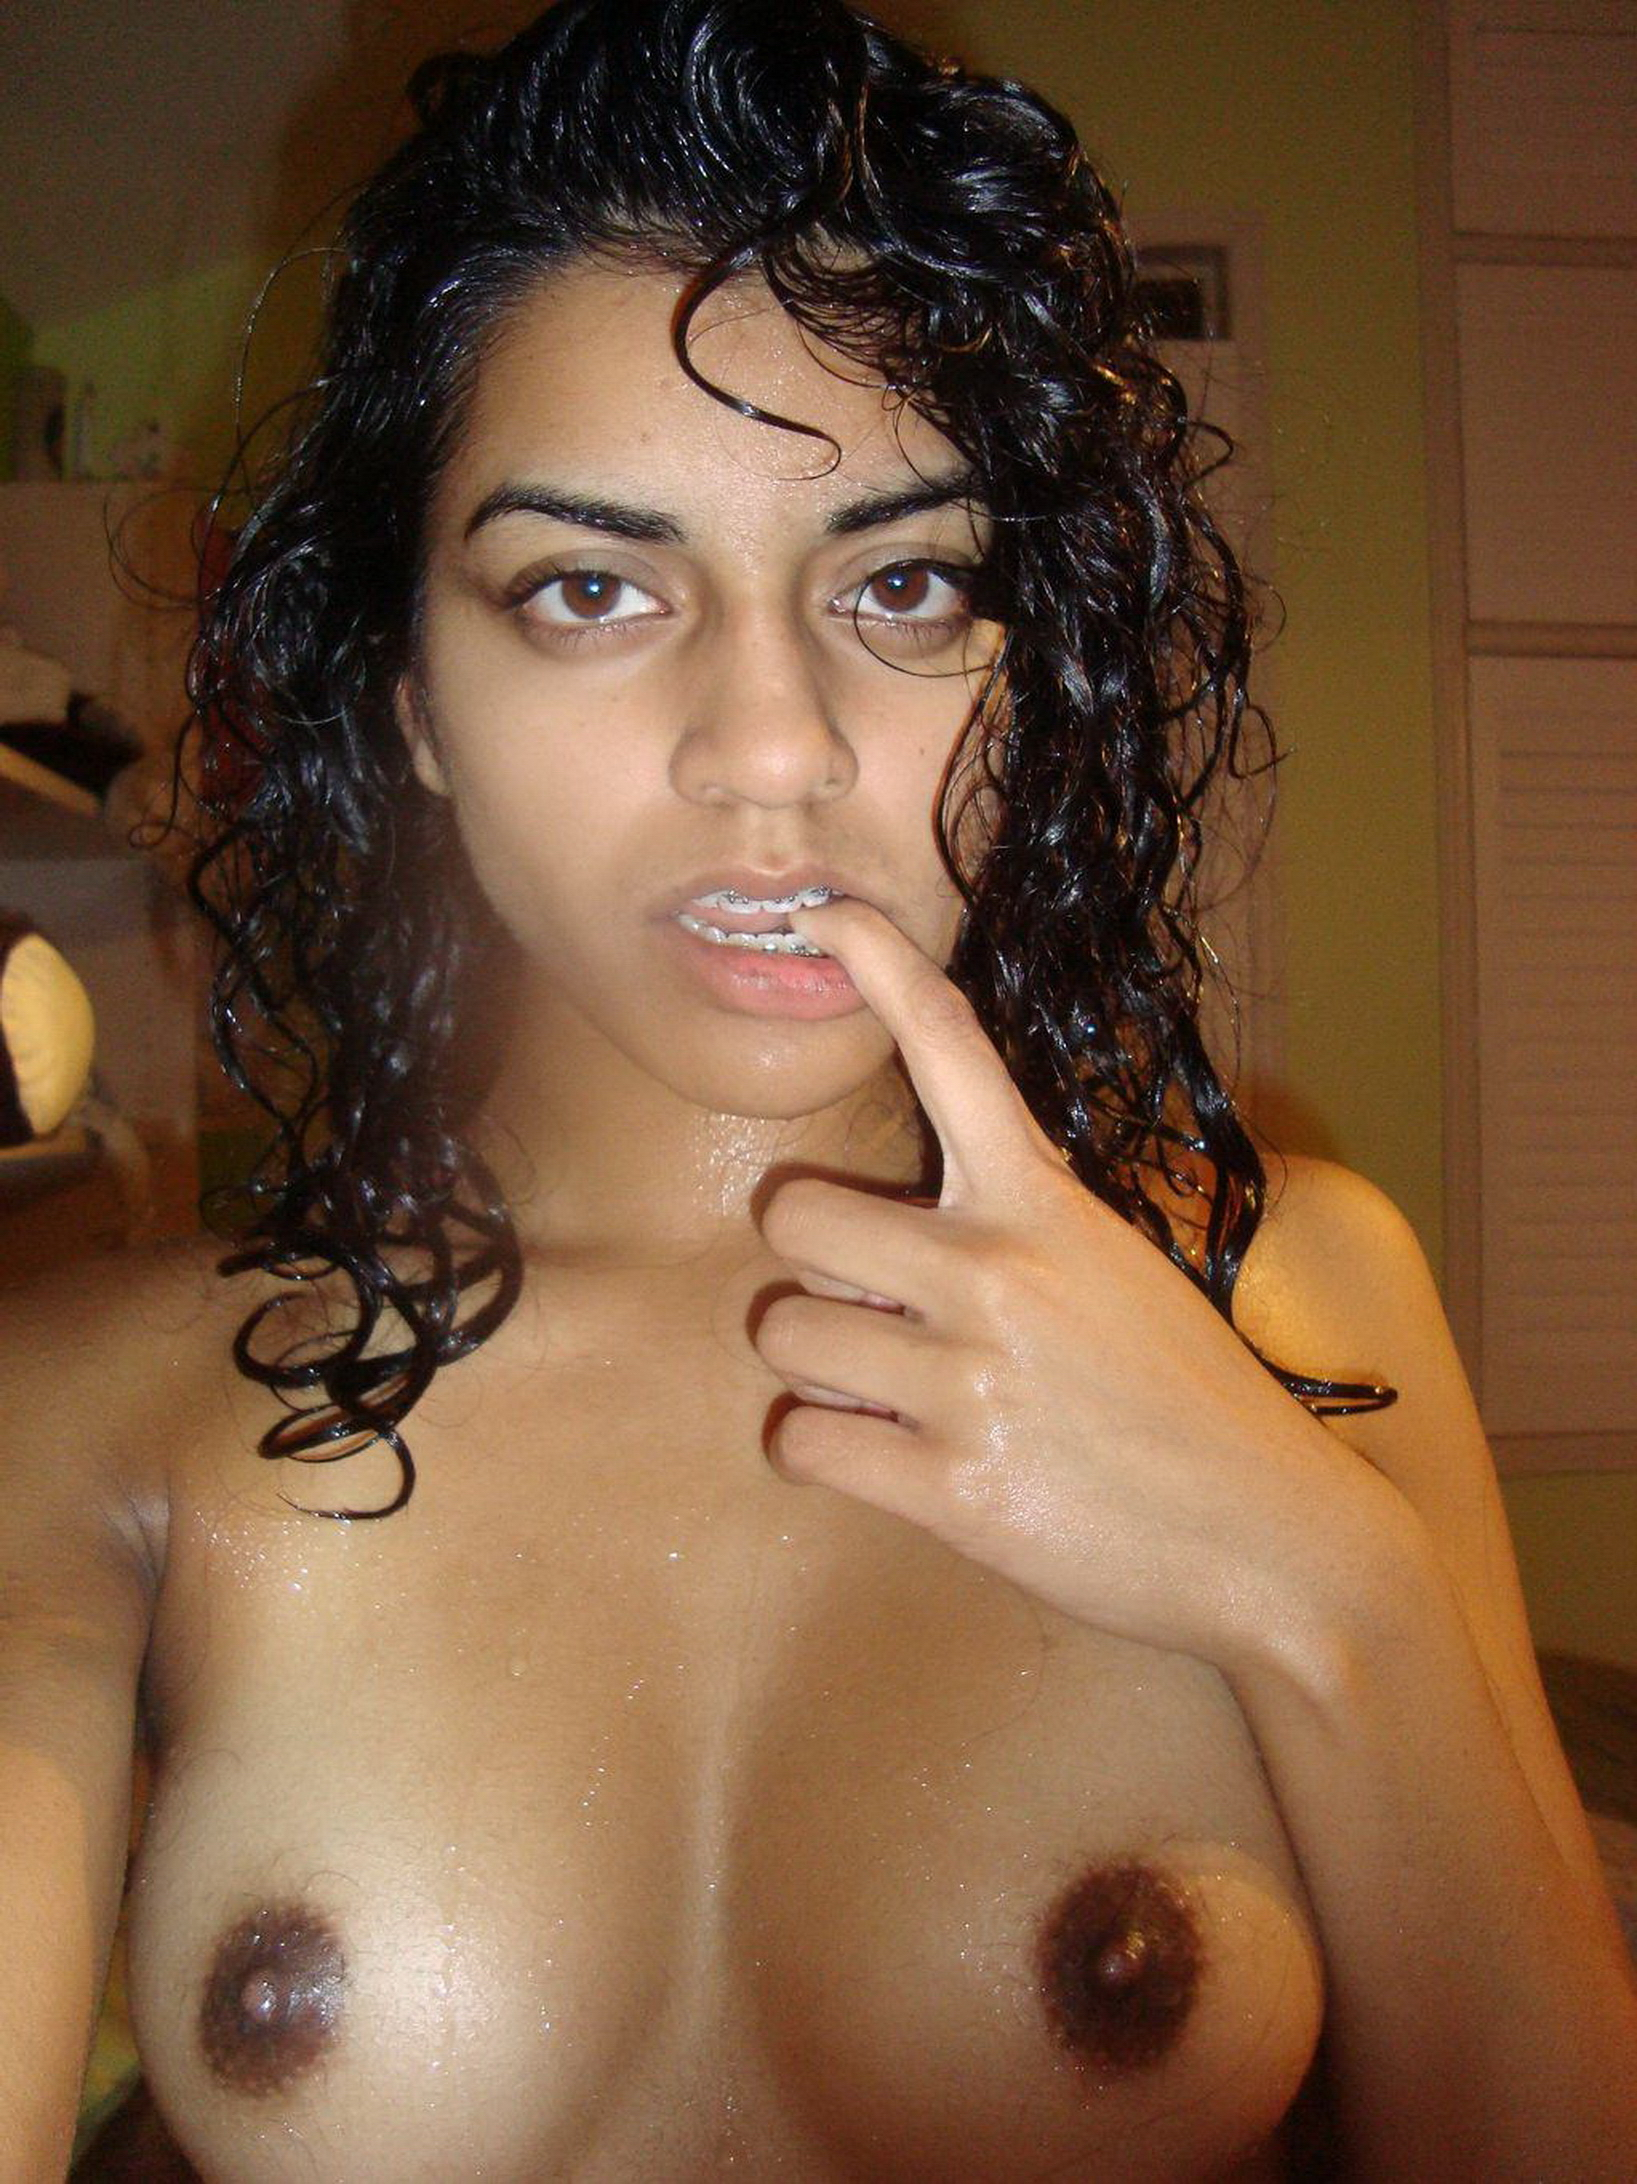 Sexy indian girl naked without face american